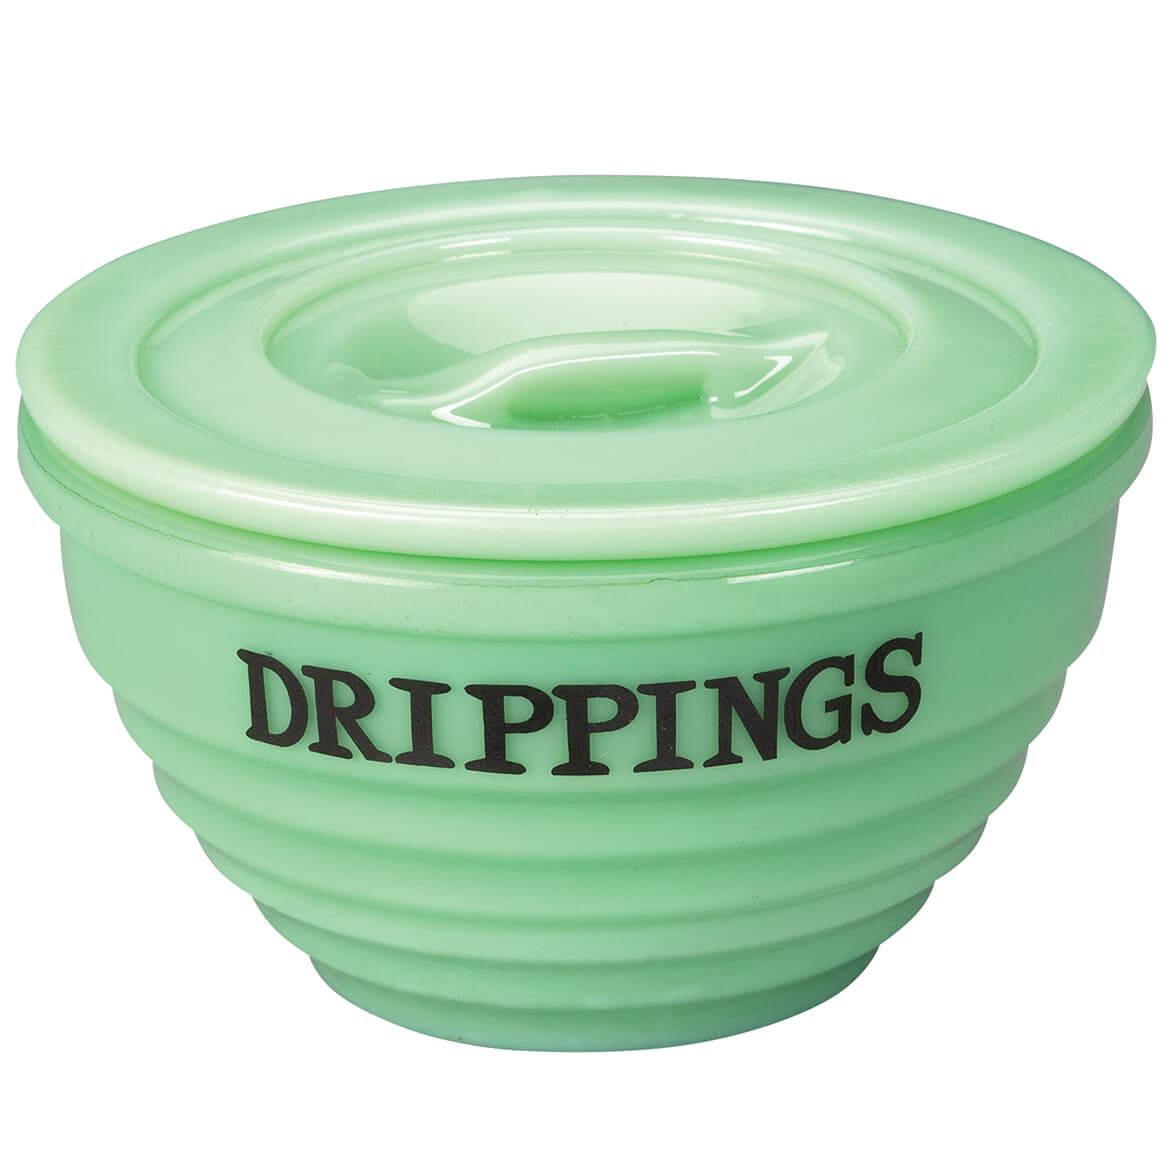 Drippings Jadite Bowl with Lid by Home Marketplace-369170